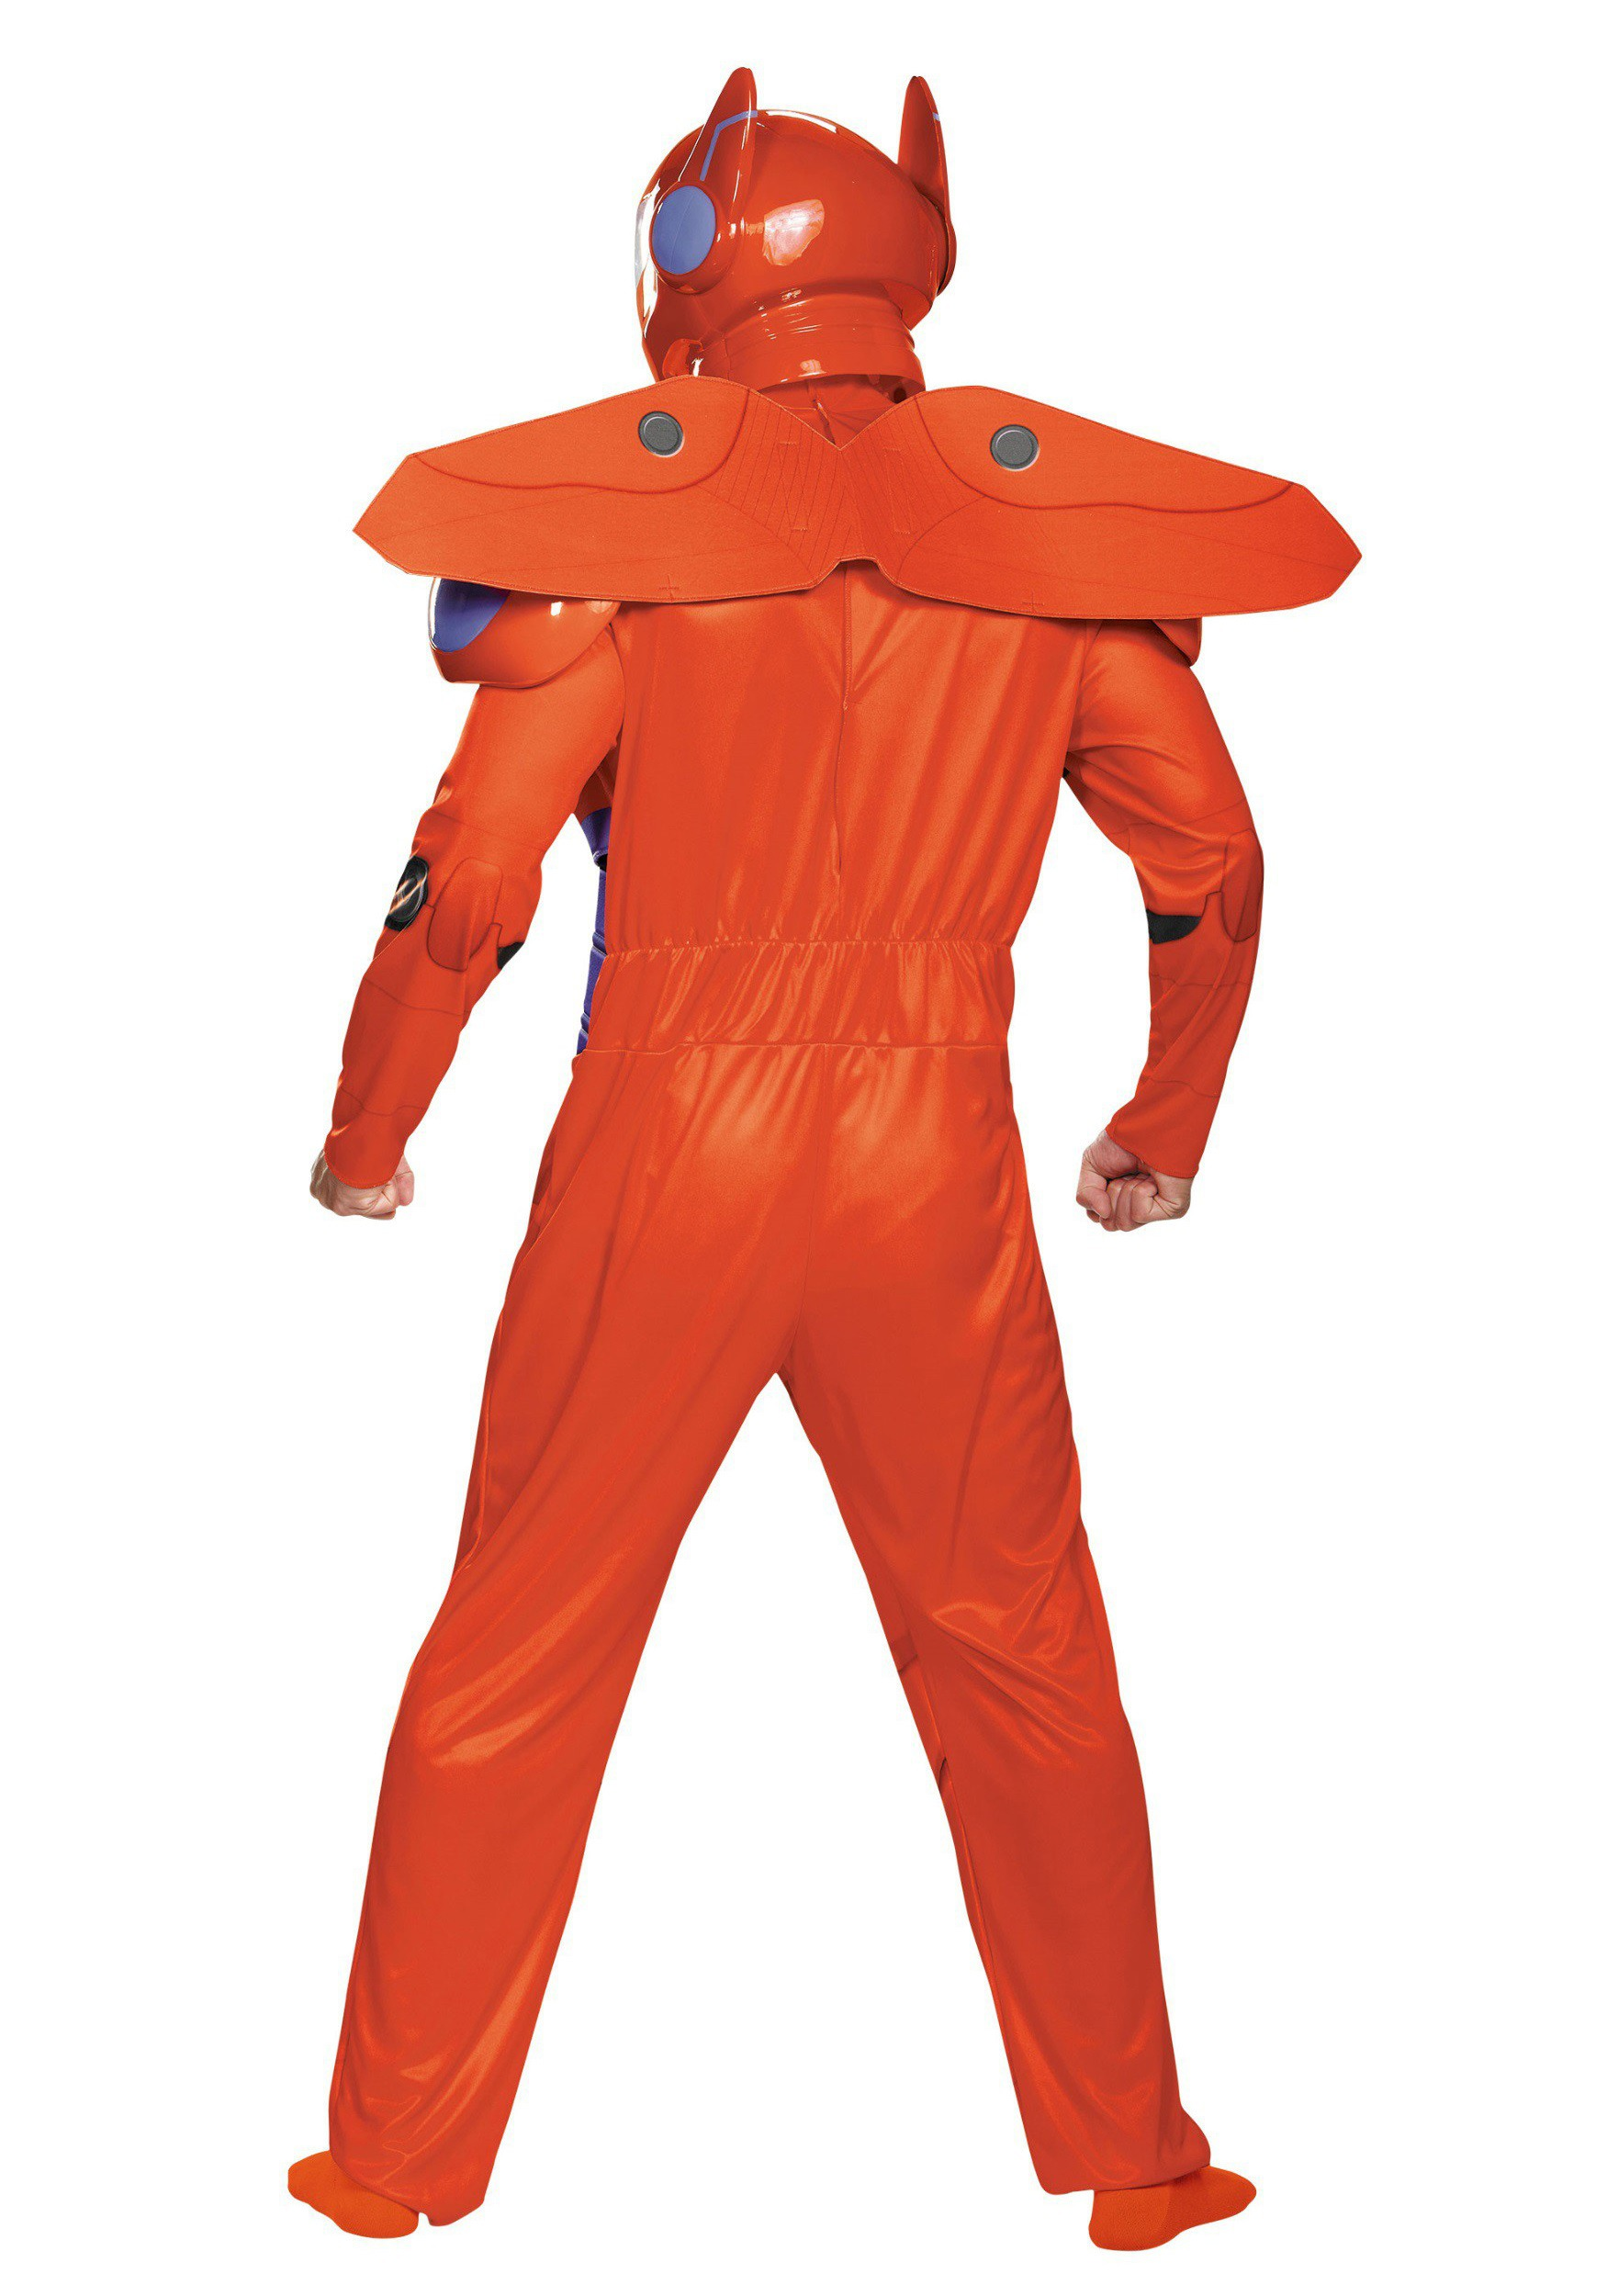 c52791997 ... Adult Plus Size Red Baymax Deluxe Costume